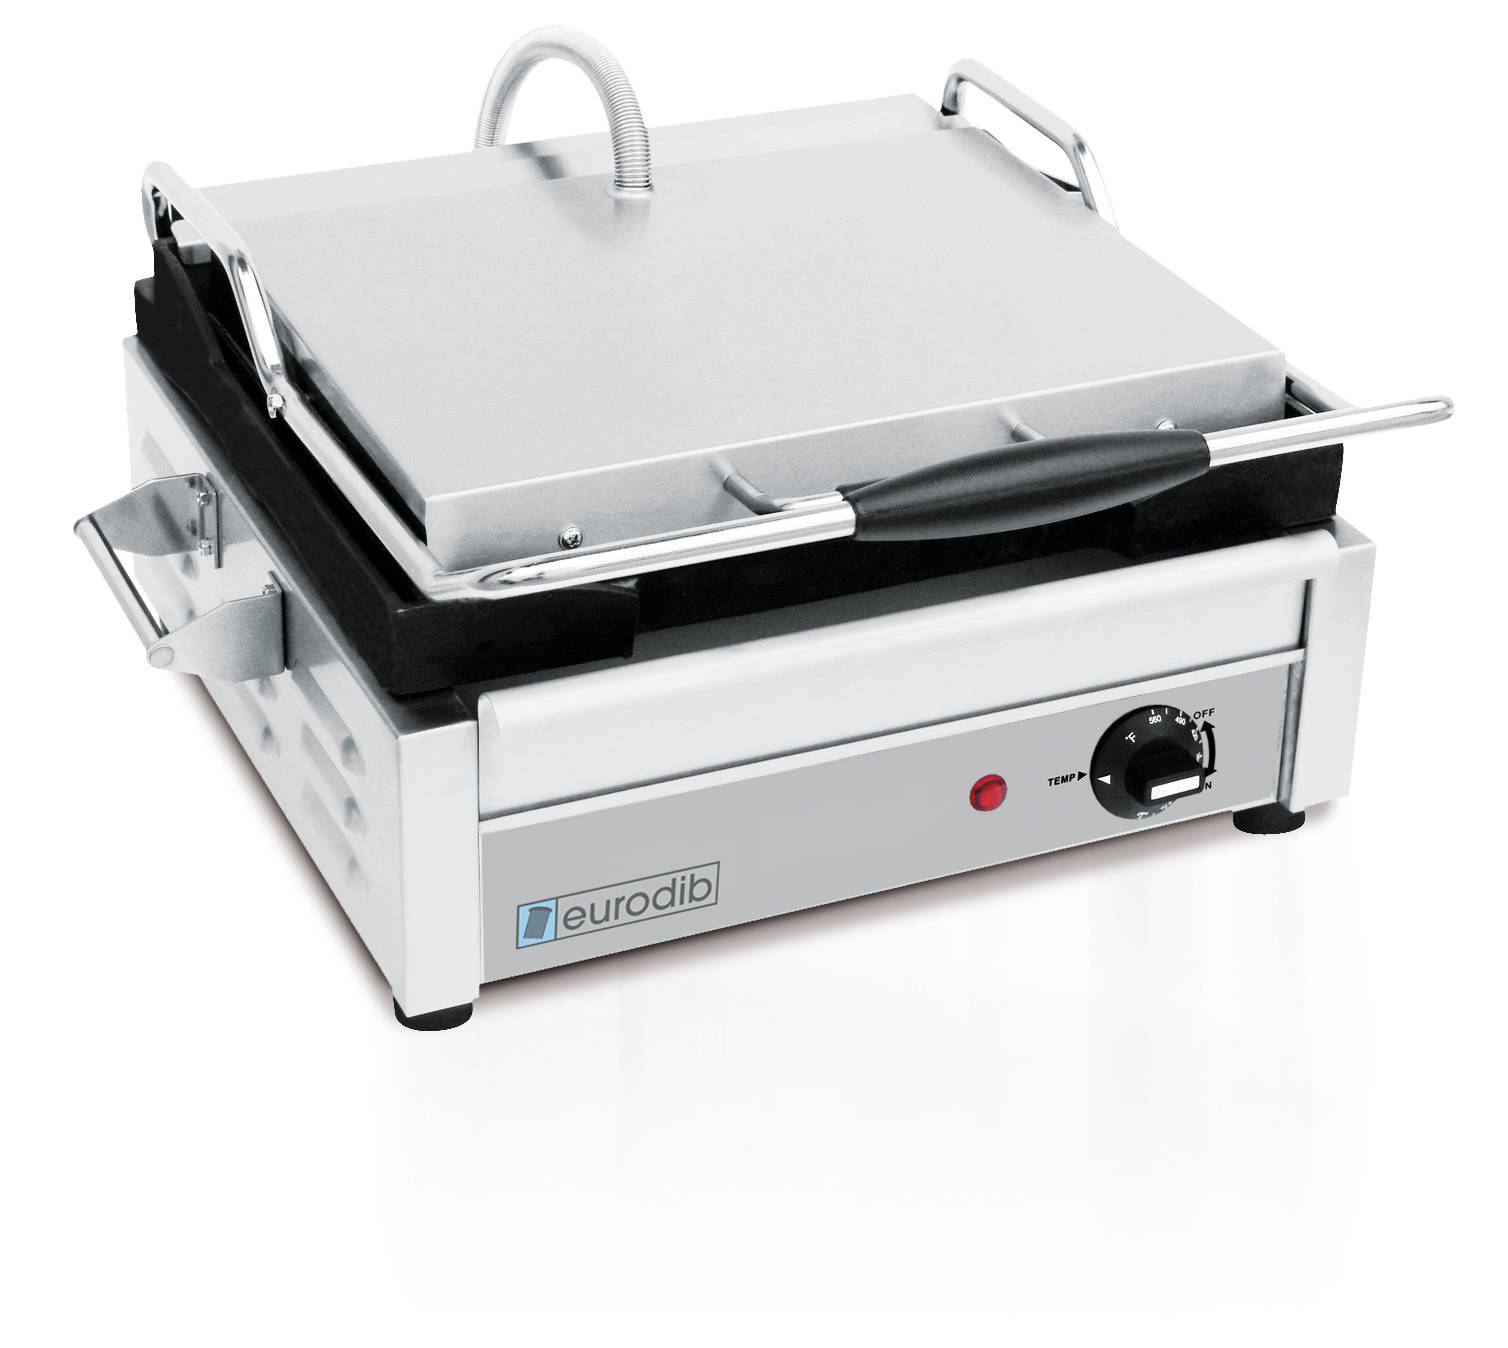 Eurodib USA SFE02345 commercial electric panini grill